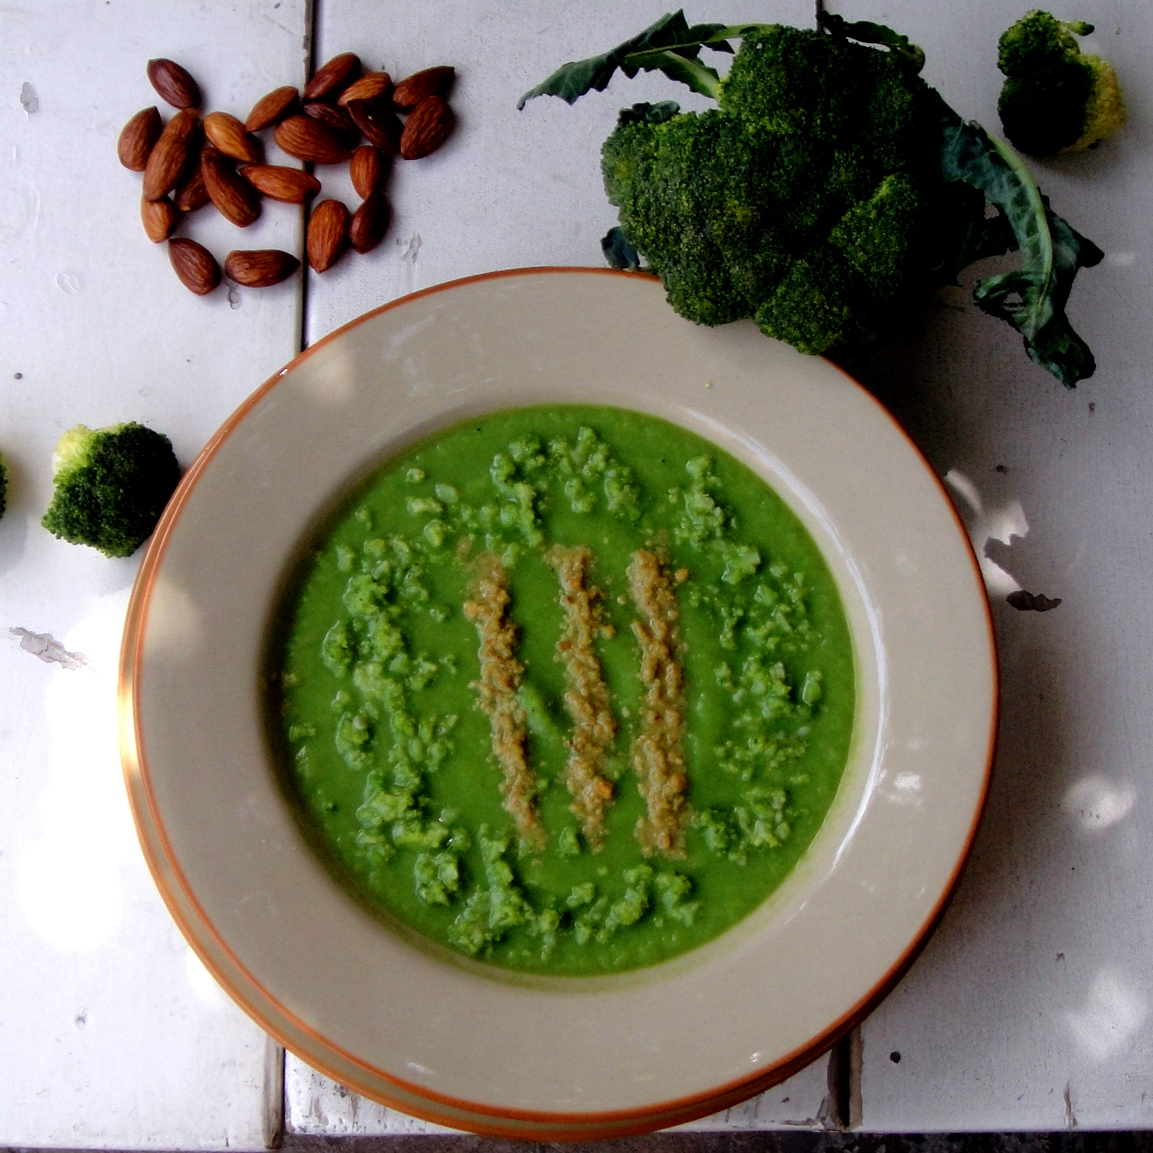 Almond and Broccoli Soup